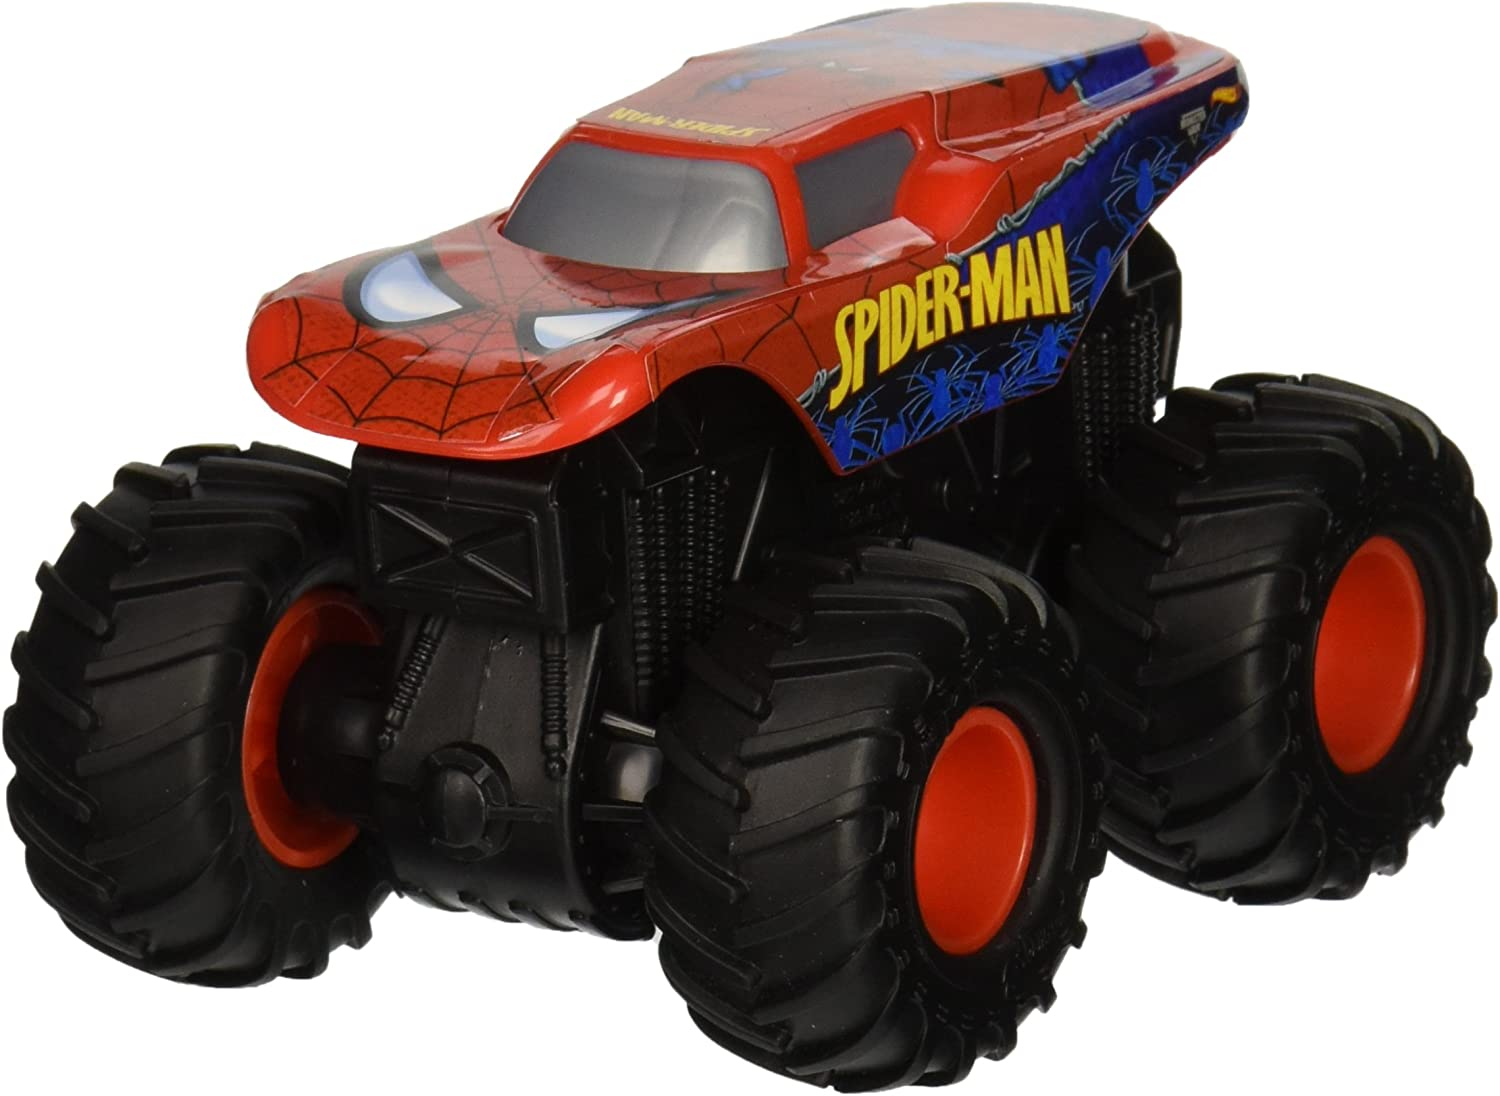 Hot Wheels Monster Jam Rev Tredz SpiderMan Vehicle by Hot Wheels